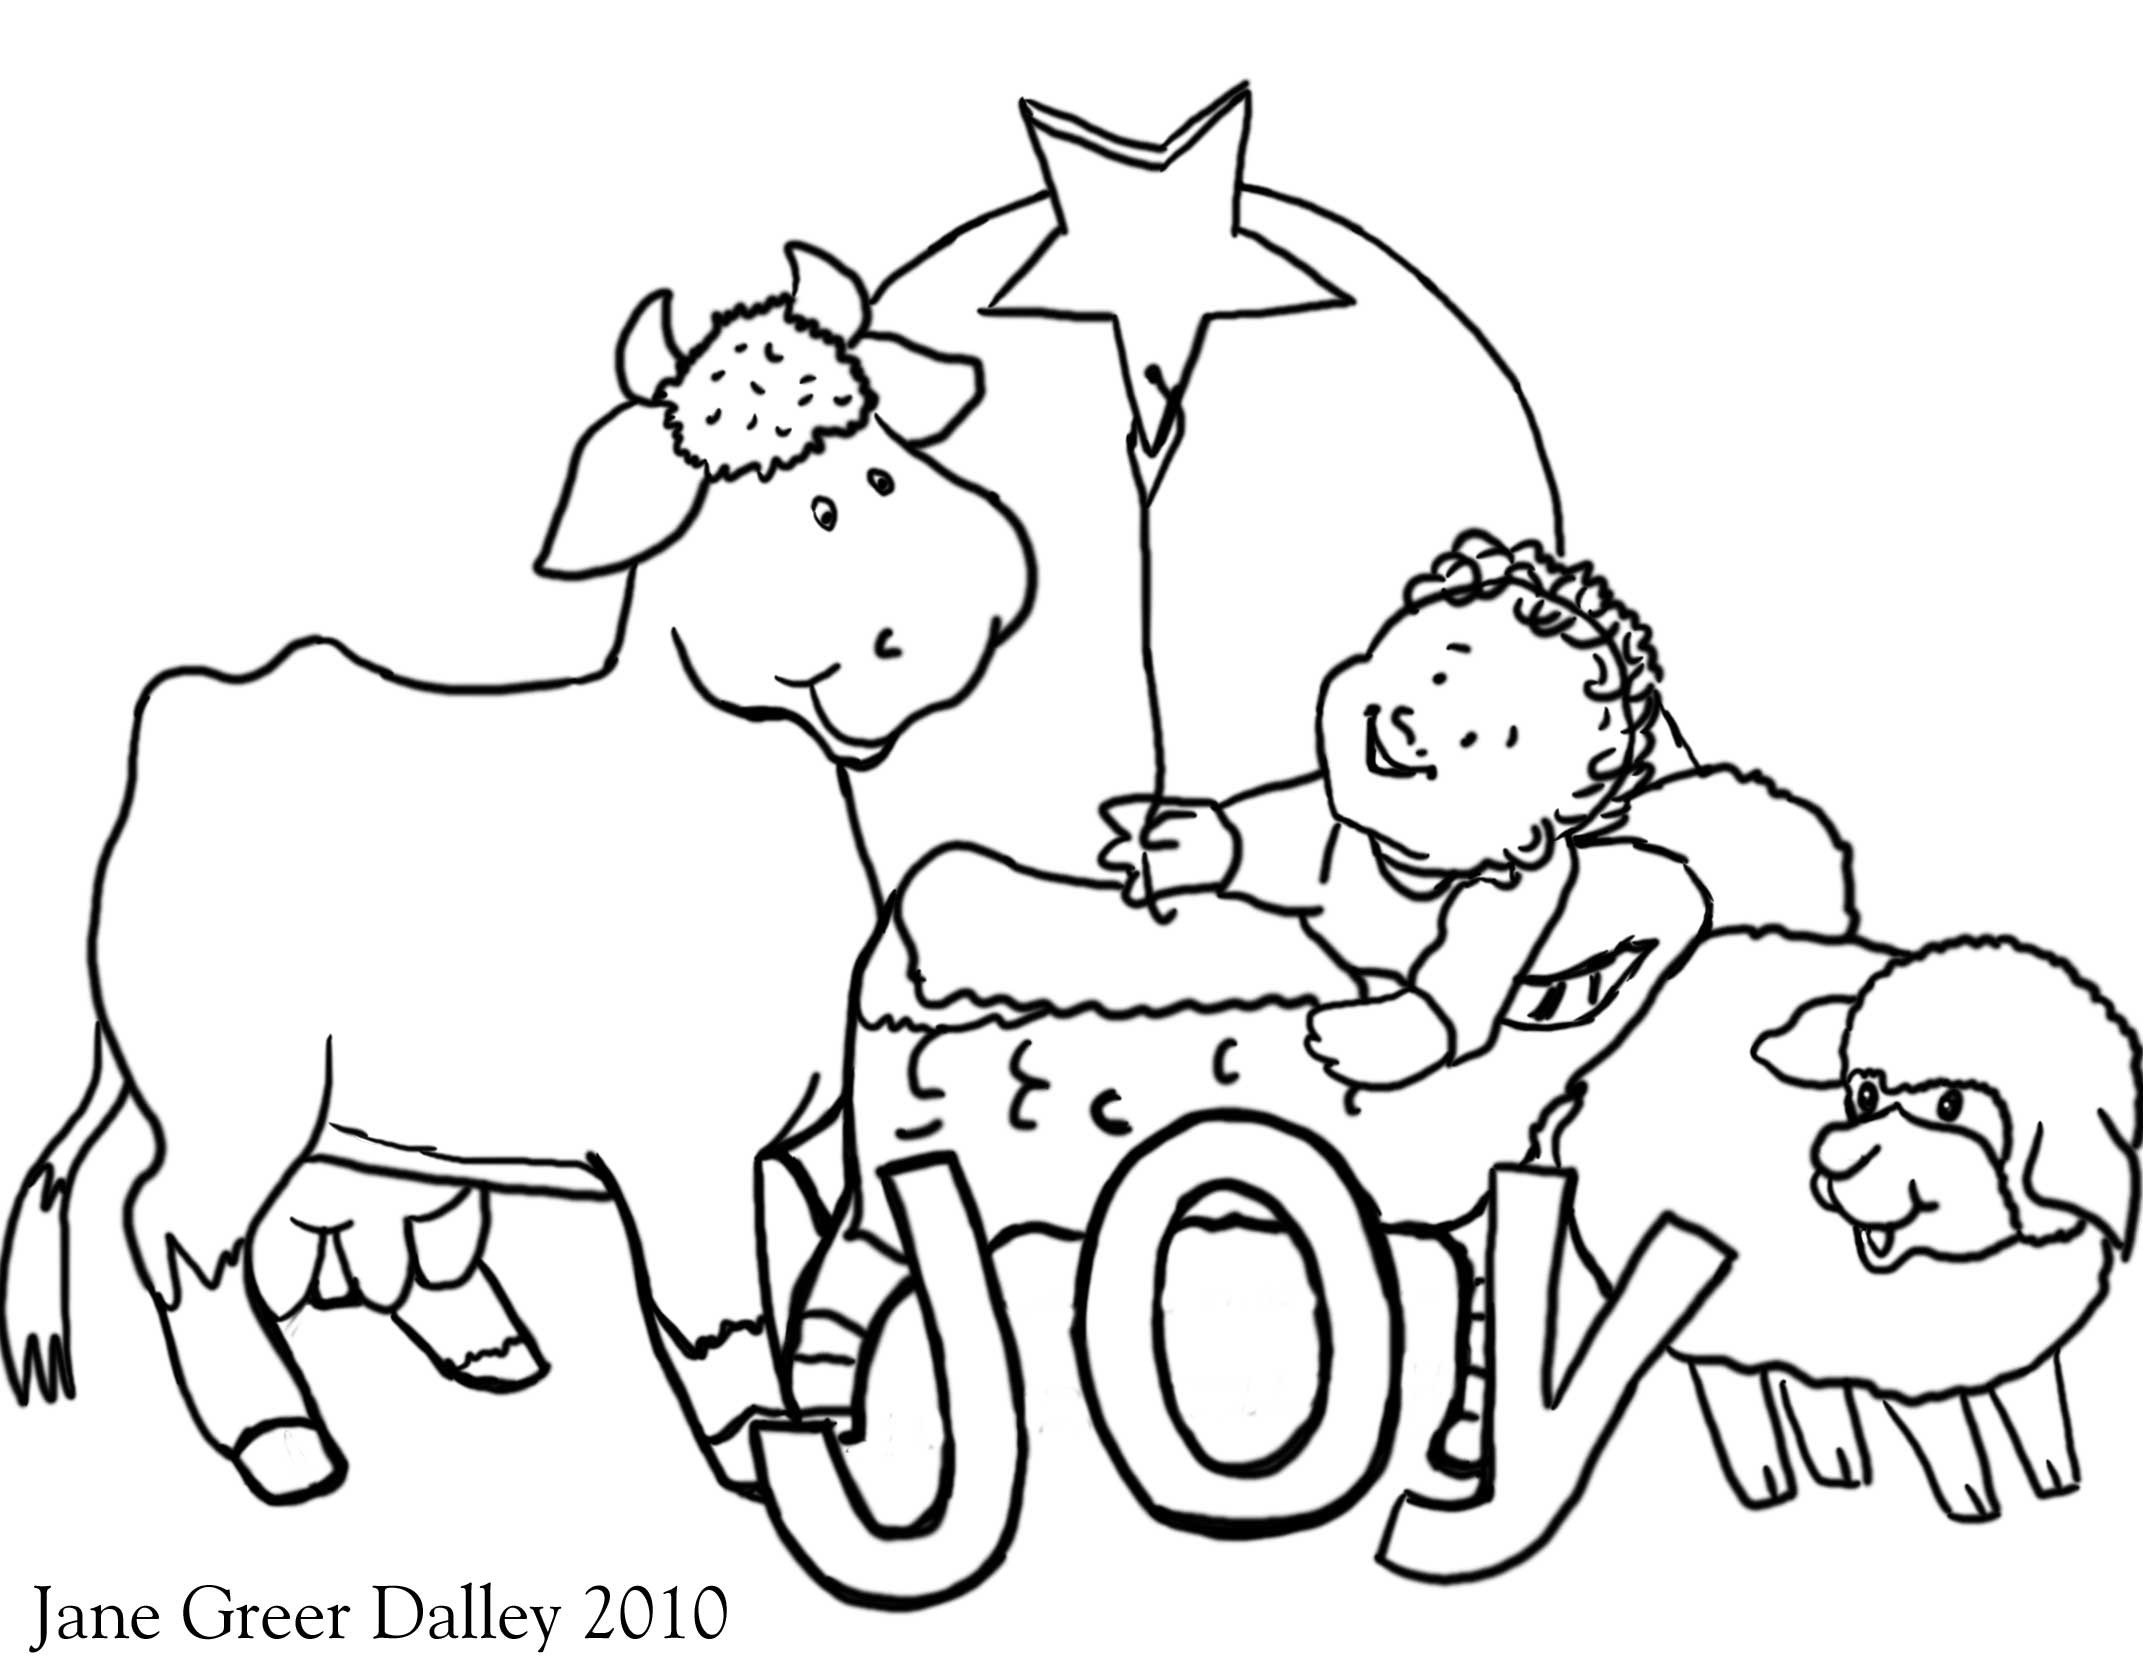 Christmas Religious Coloring Pages For Kids  Christian Christmas Coloring Pages Printable